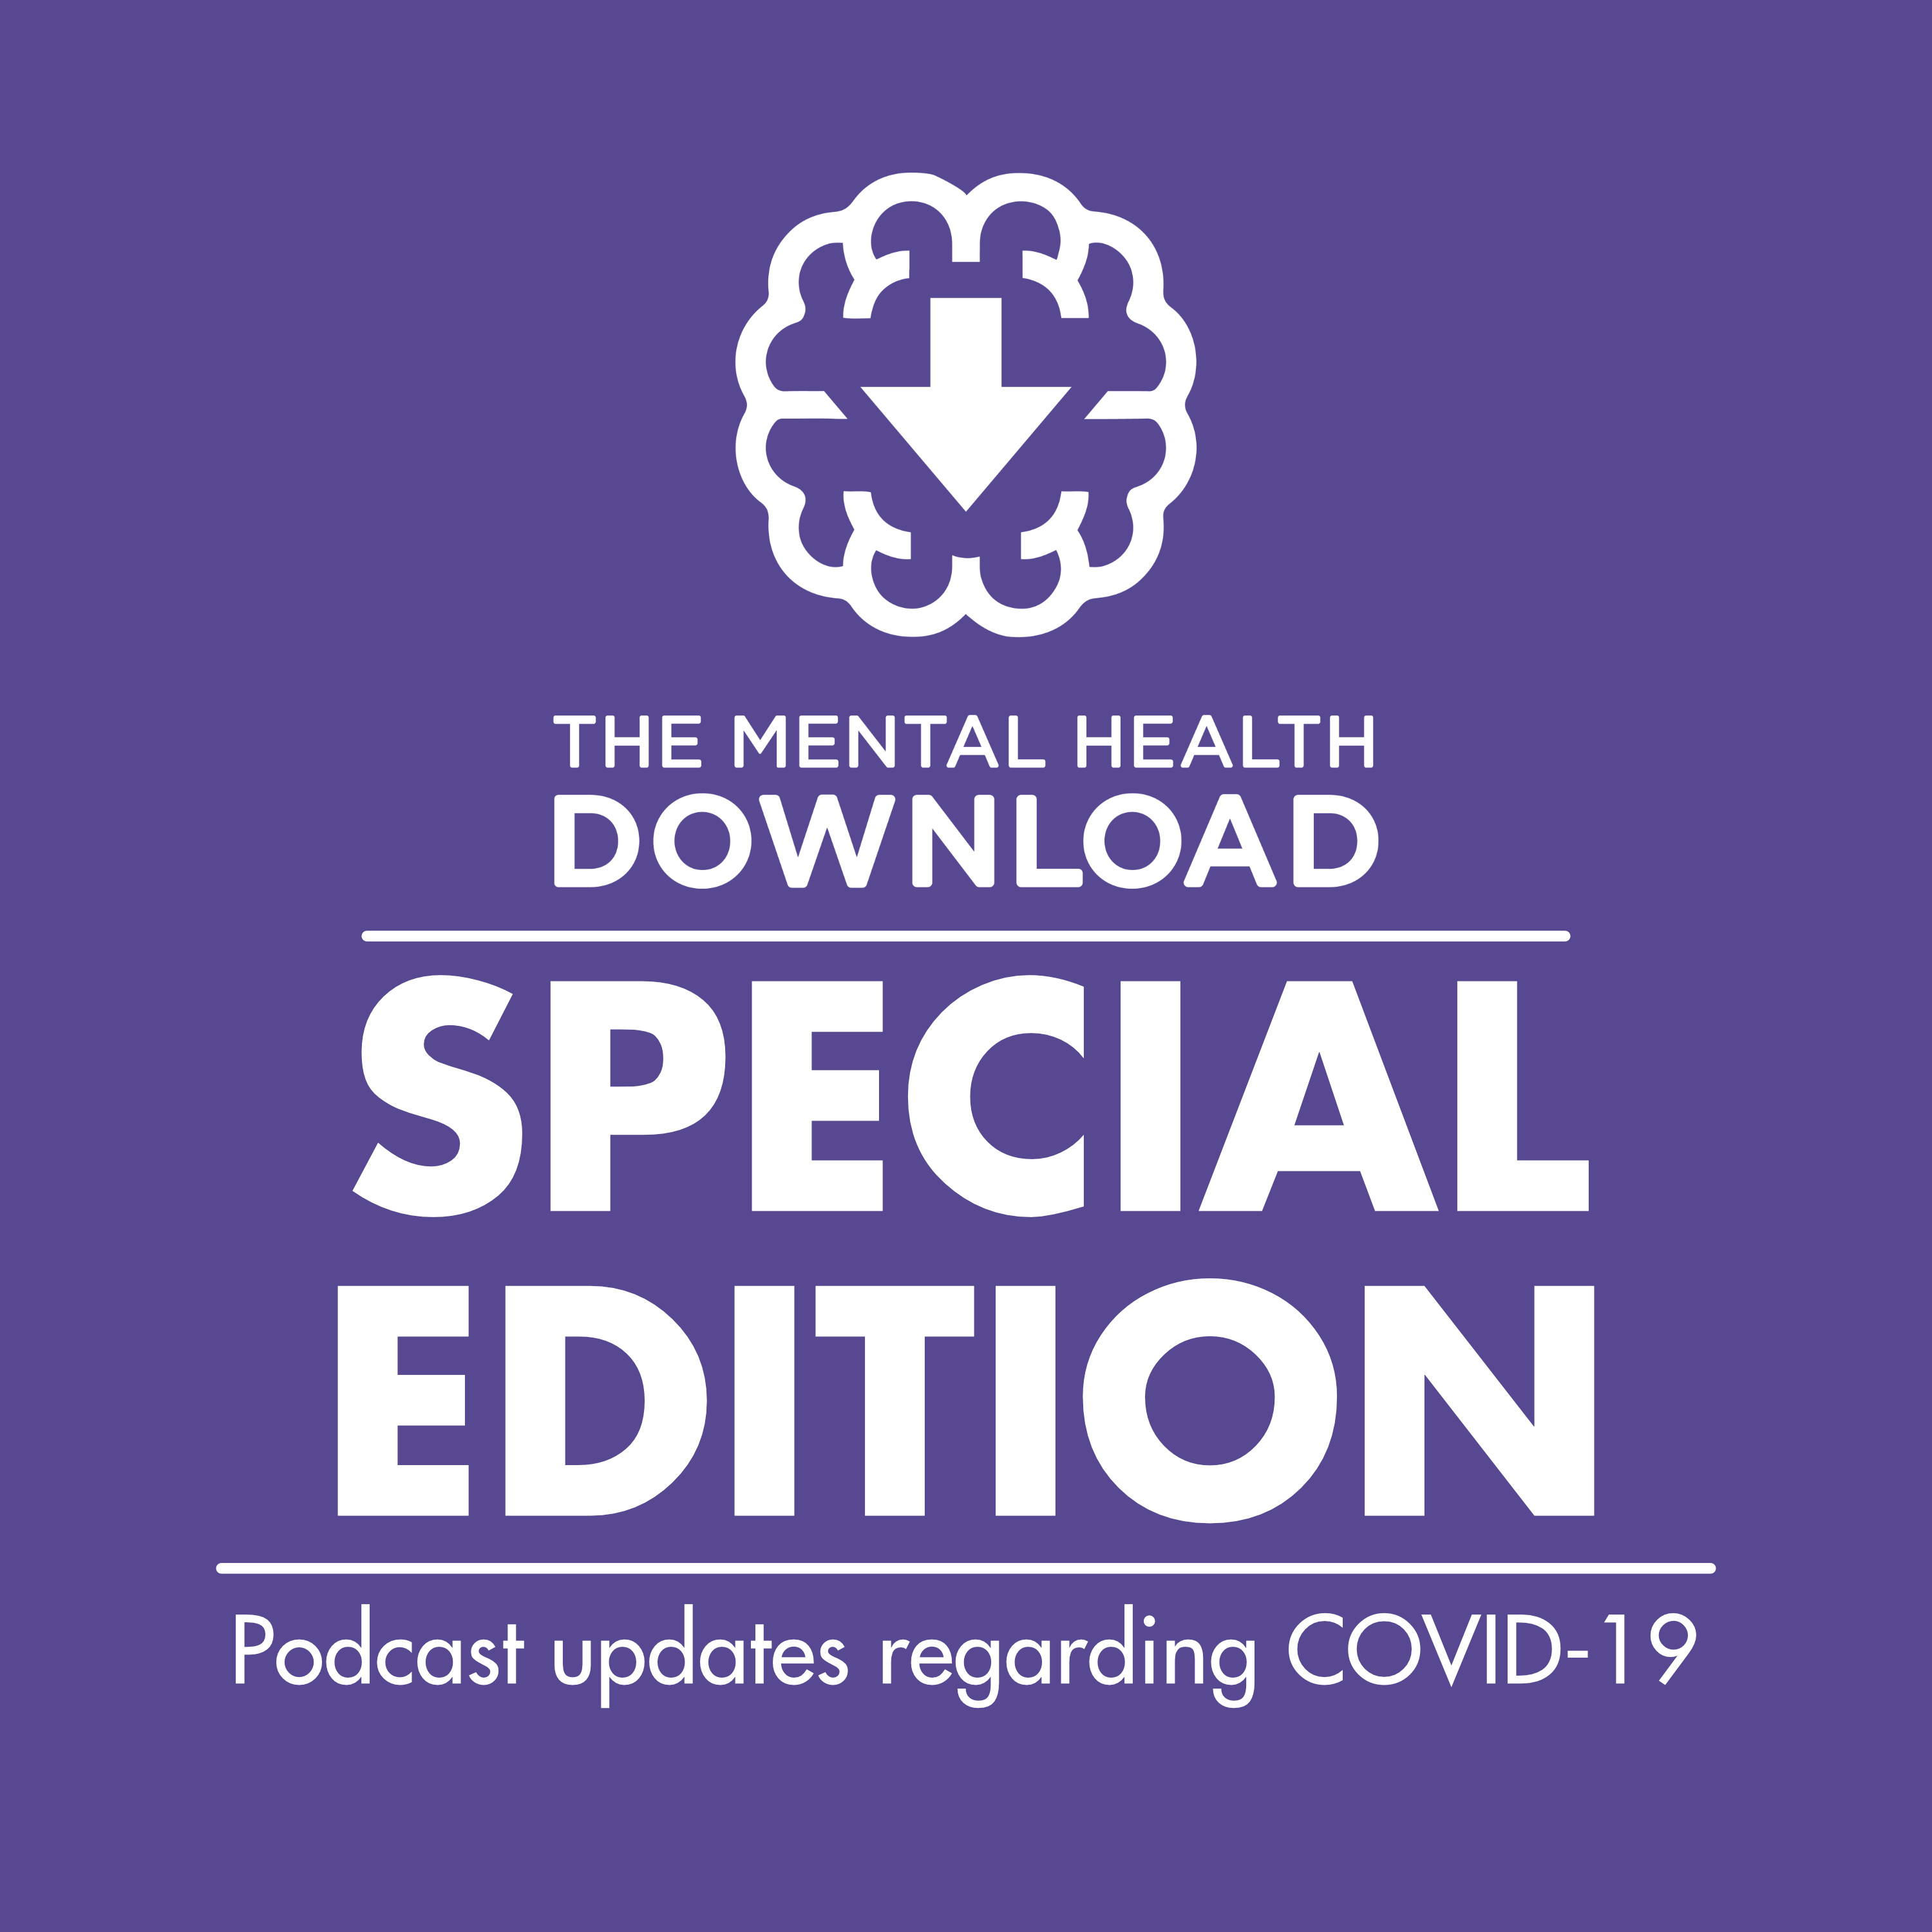 Mental Health Download: Exploring Mental Illness, Suicide, Homelessness and Incarceration - COVID-19 Series: Dr. Chan Hellman on the Power of Hope